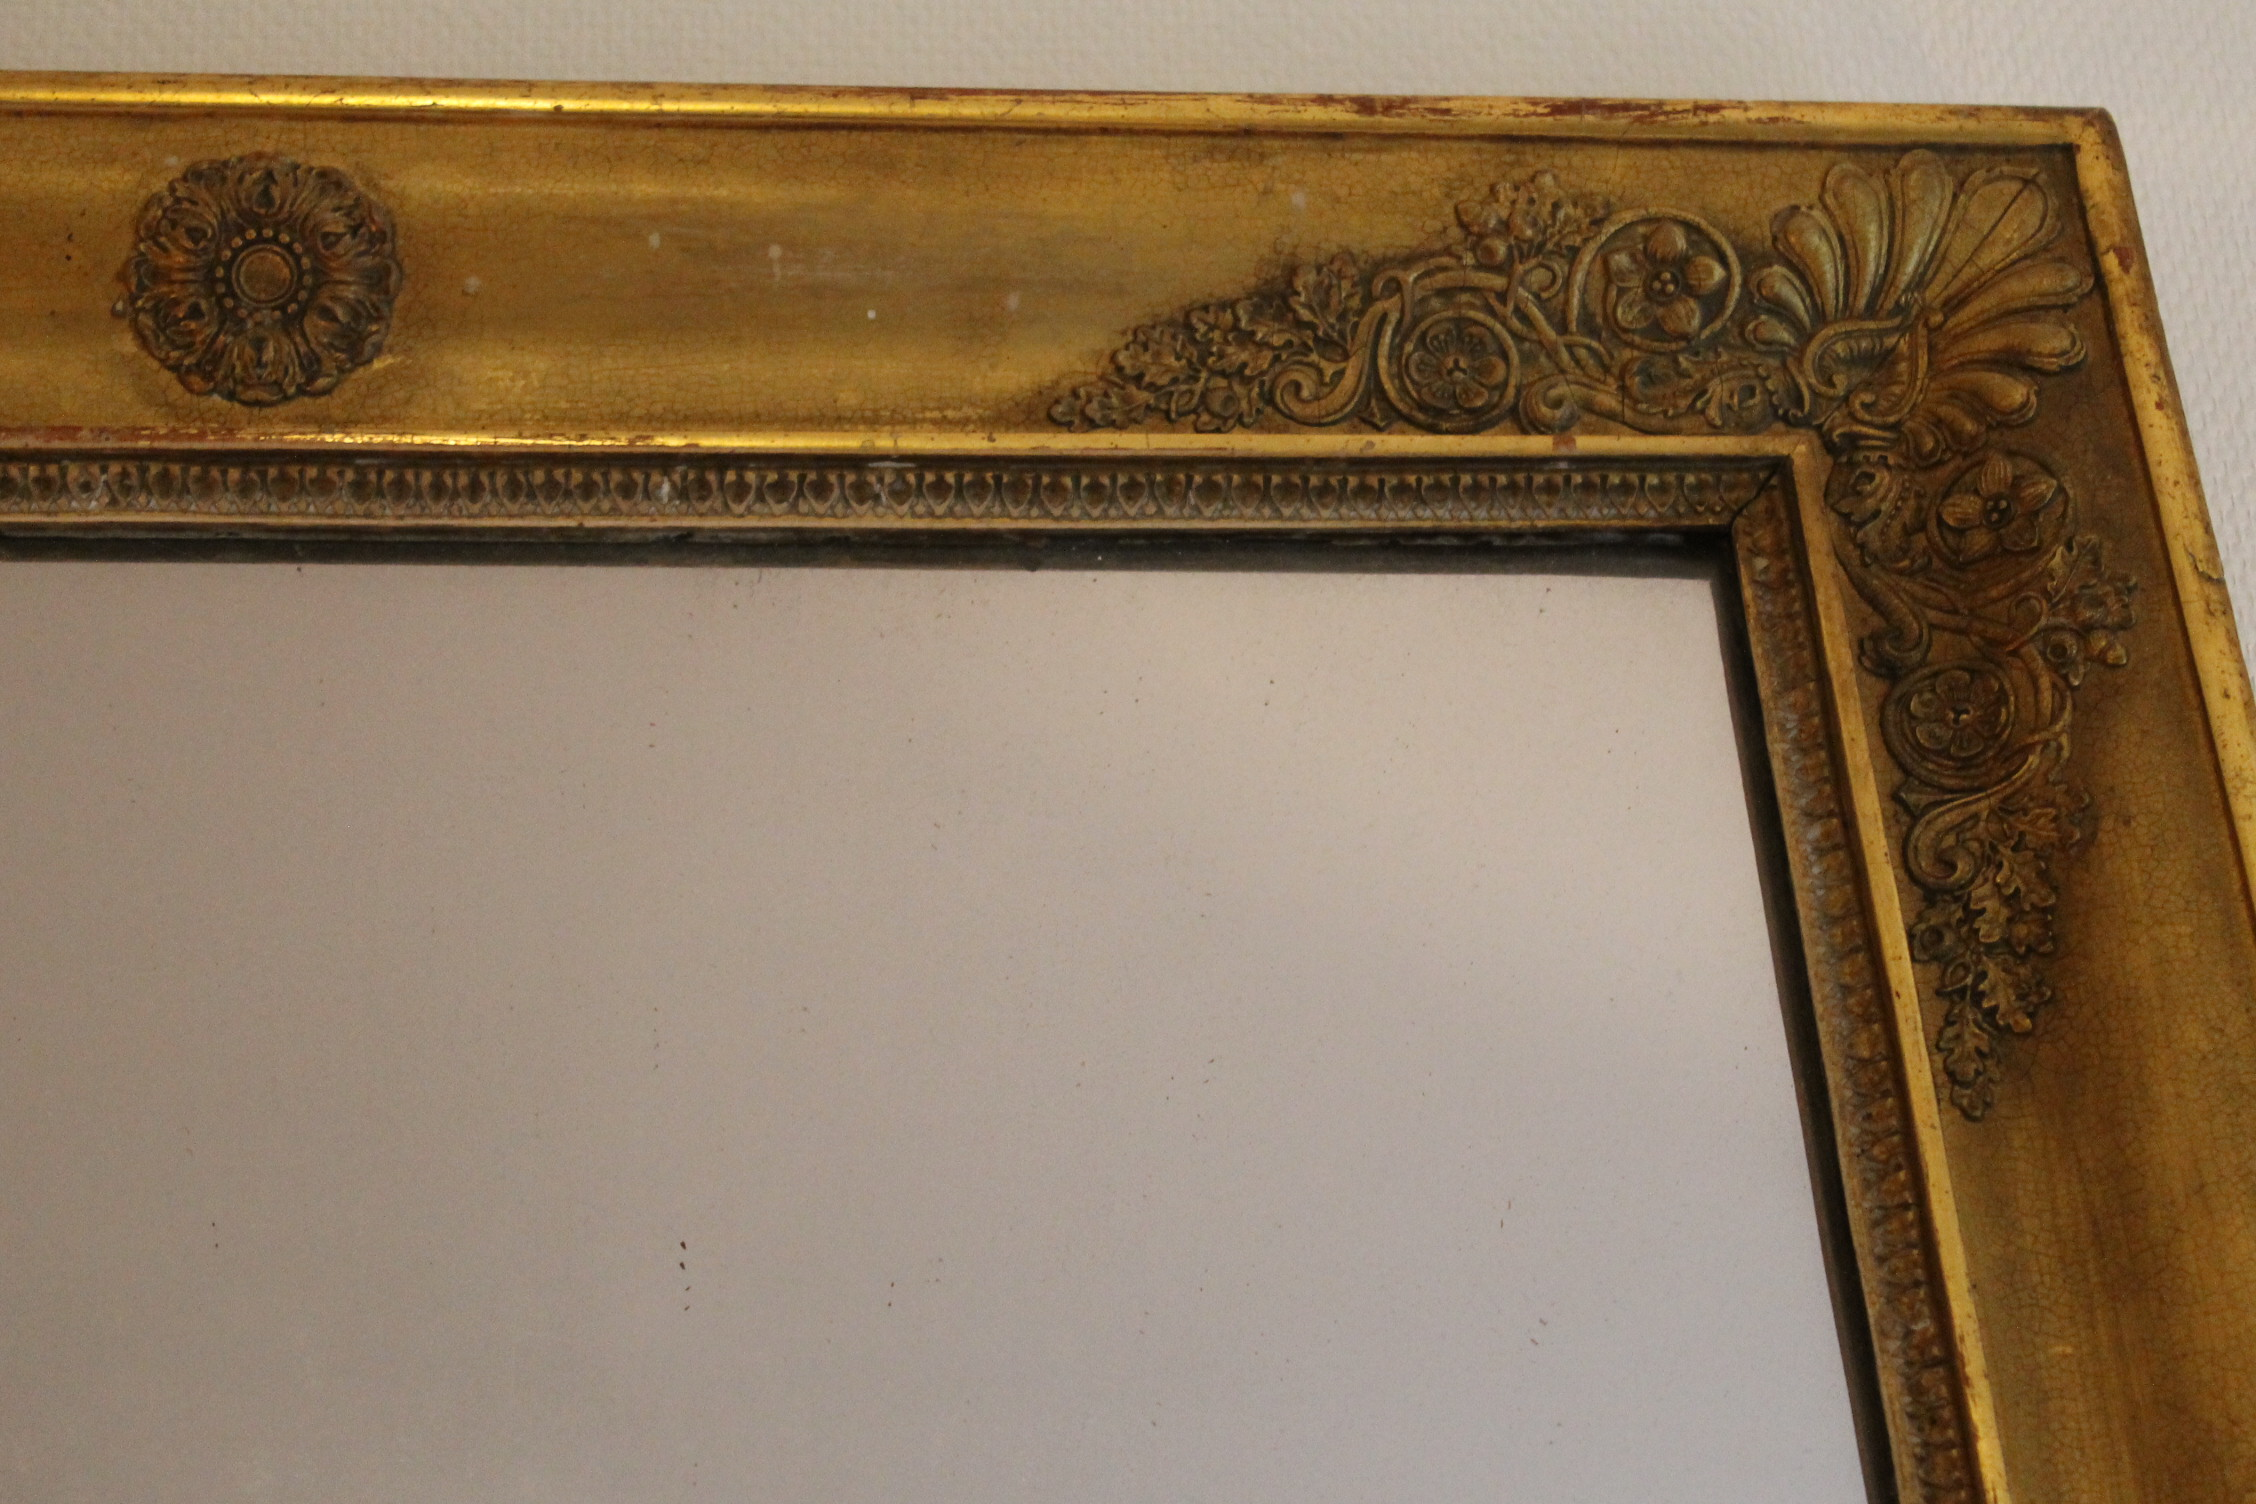 Grand miroir d poque restauration 140 cm x 86 cm for Restauration miroir